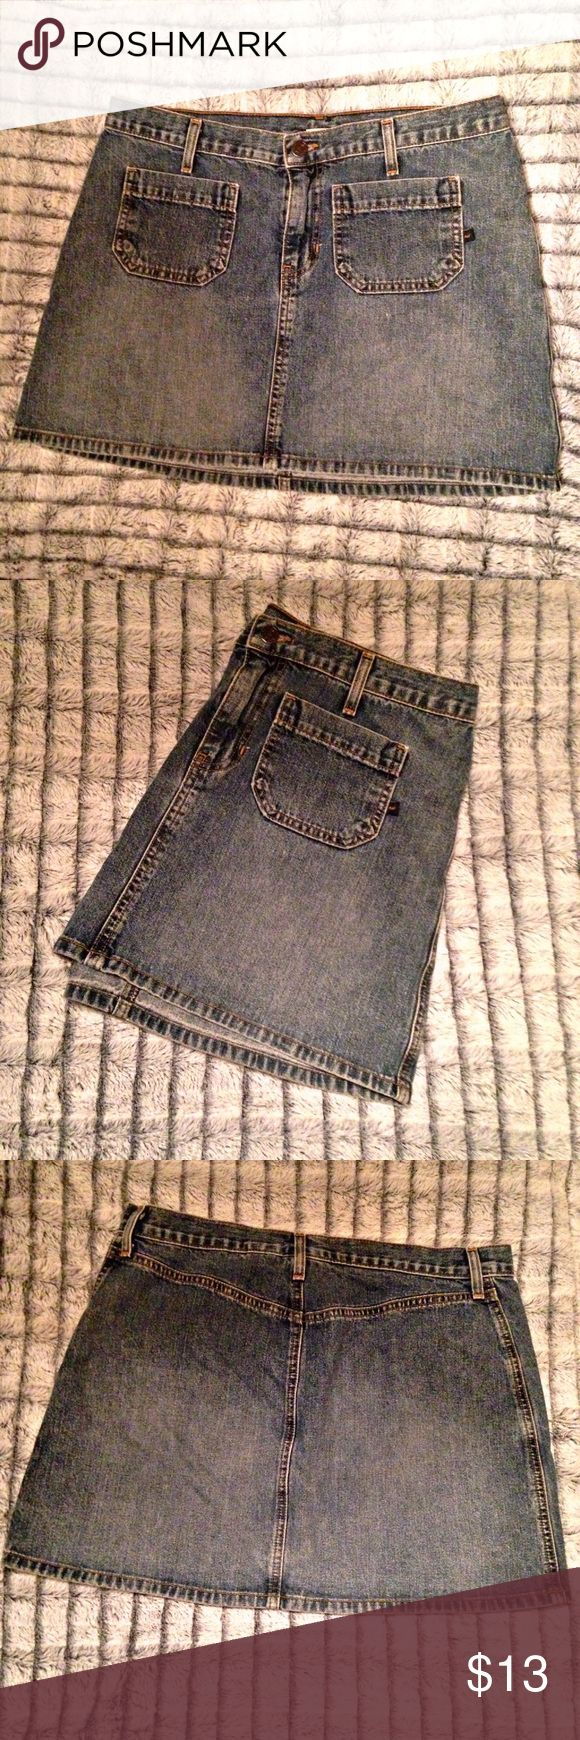 """Abercrombie and Fitch jean skirt Abercrombie and Fitch size 8 jean skirt. Has two pockets in the front and none in the back. 33 1/2"""" waist. 14"""" from waist to bottom hem. Abercrombie & Fitch Skirts Mini"""